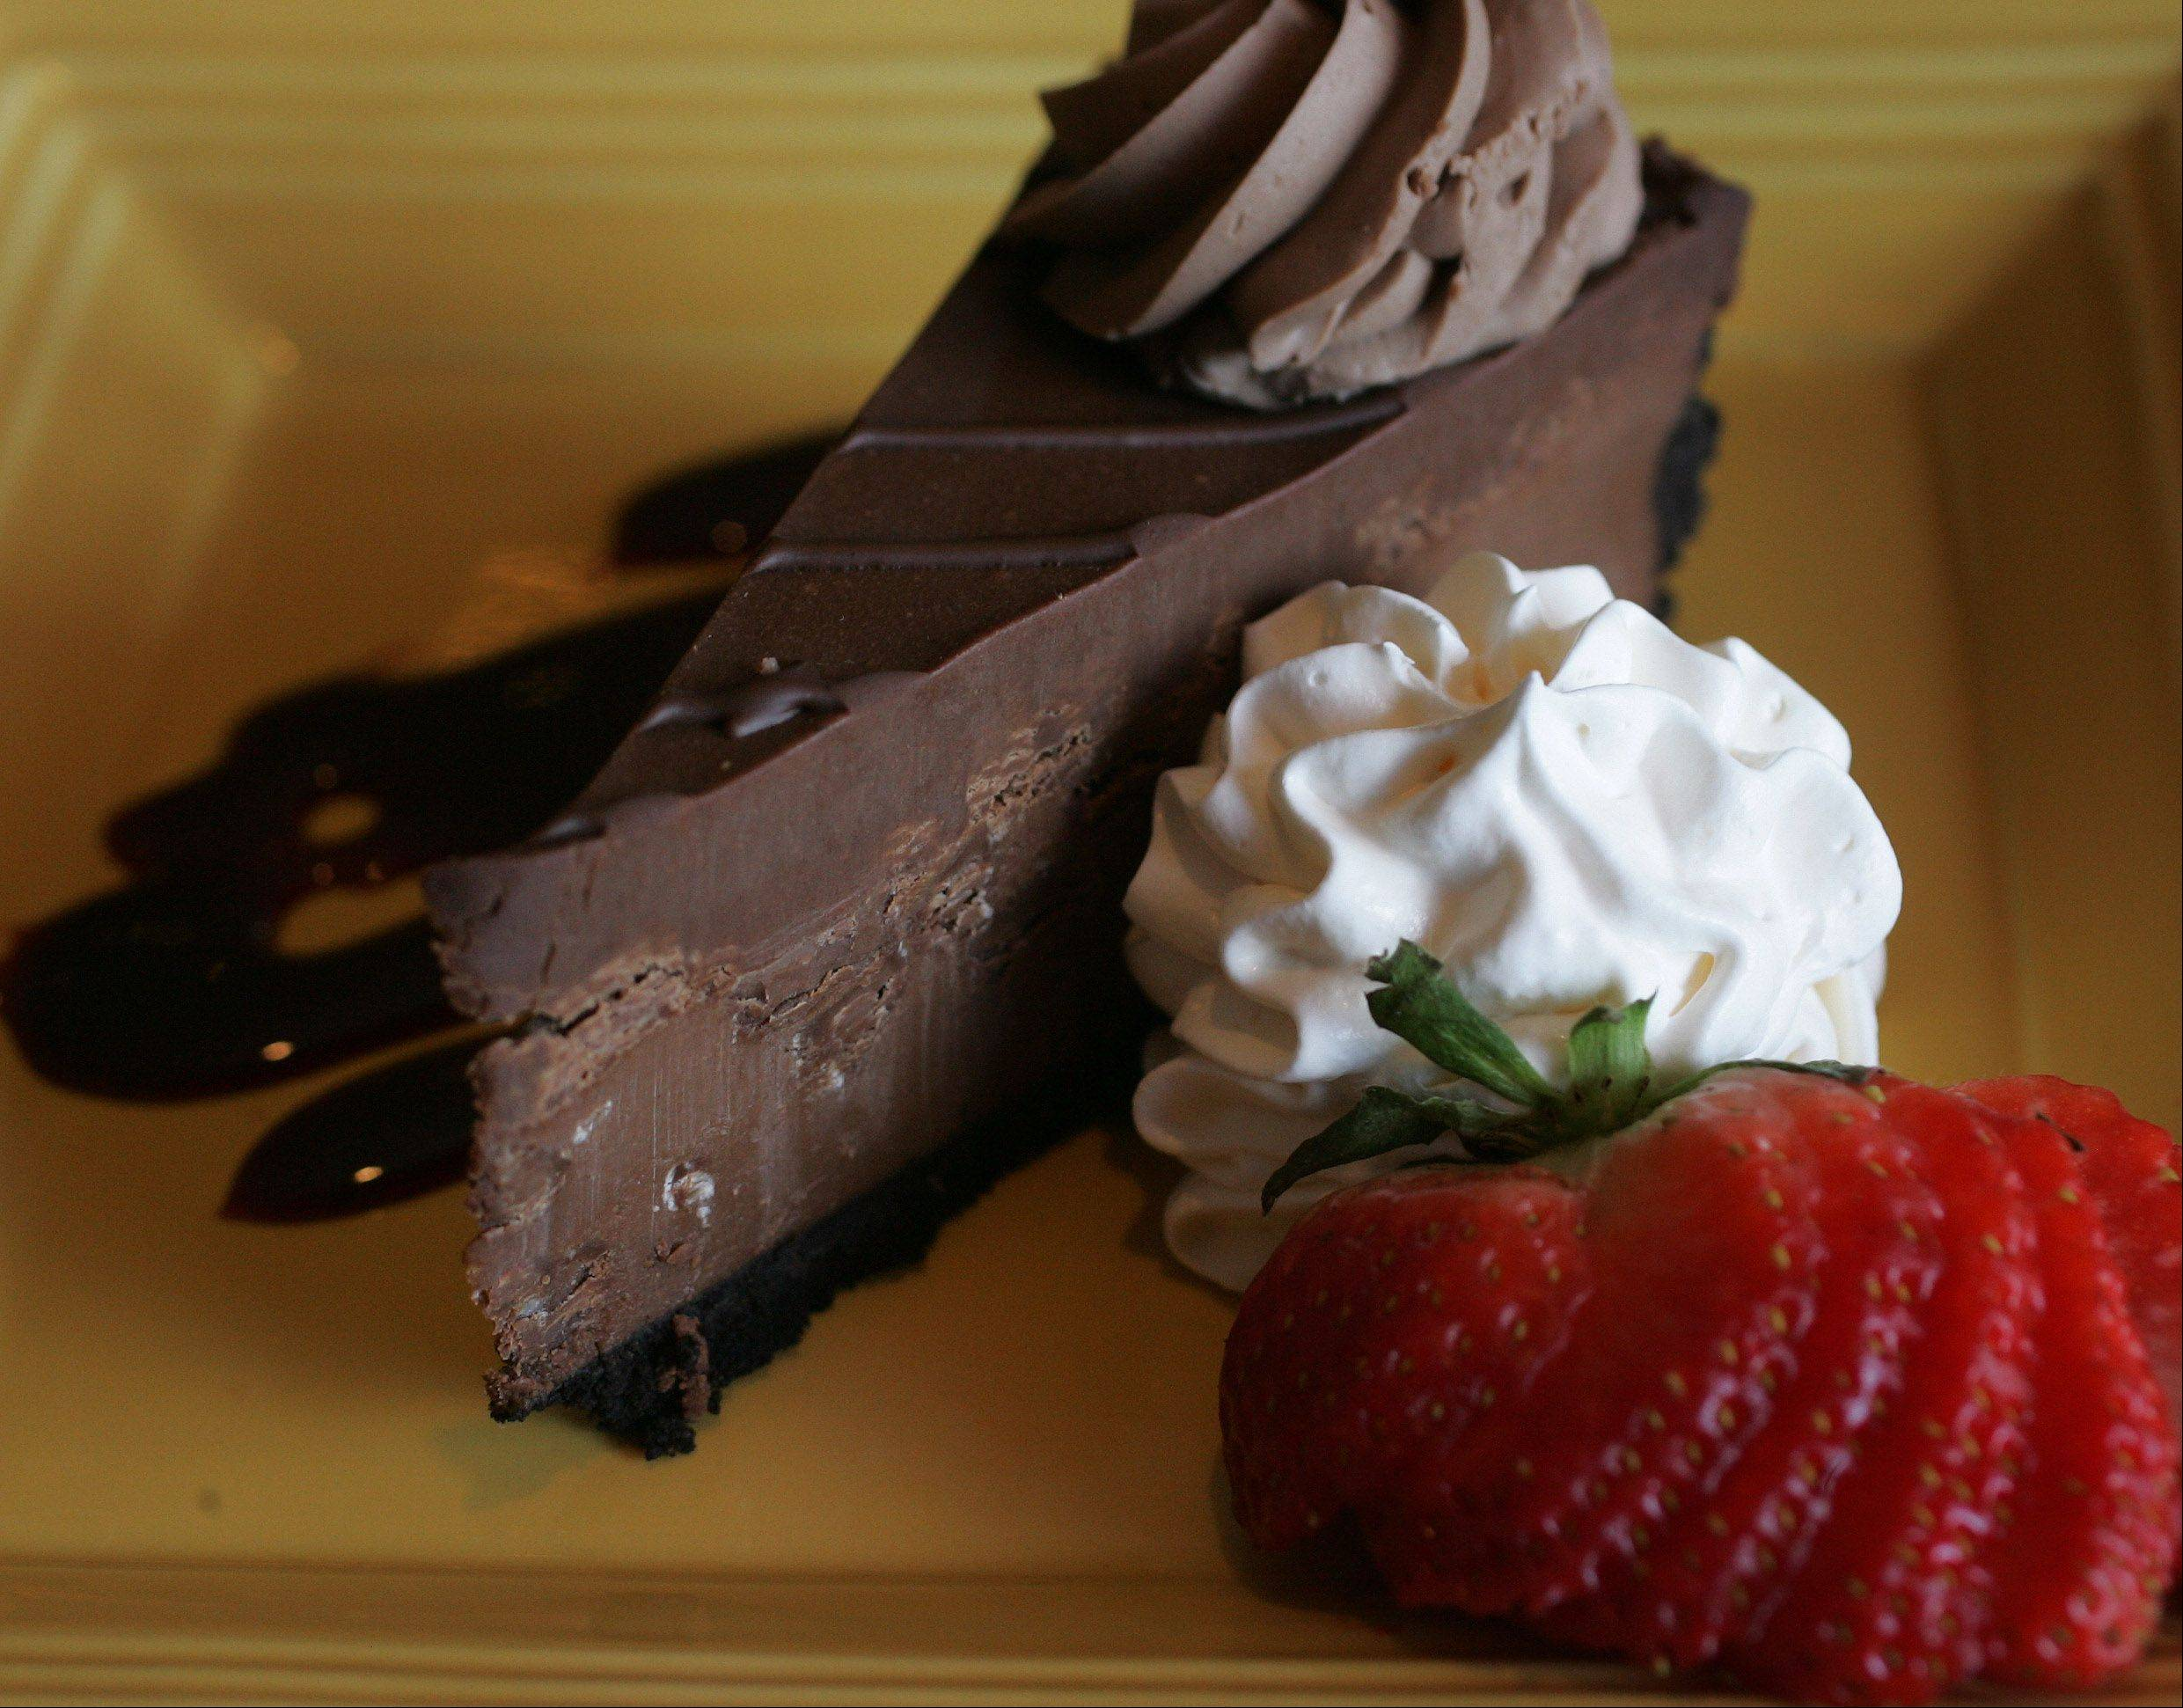 Chocolate Godiva cheesecake is a rich option for ending a meal at Confetti's in Gurnee.